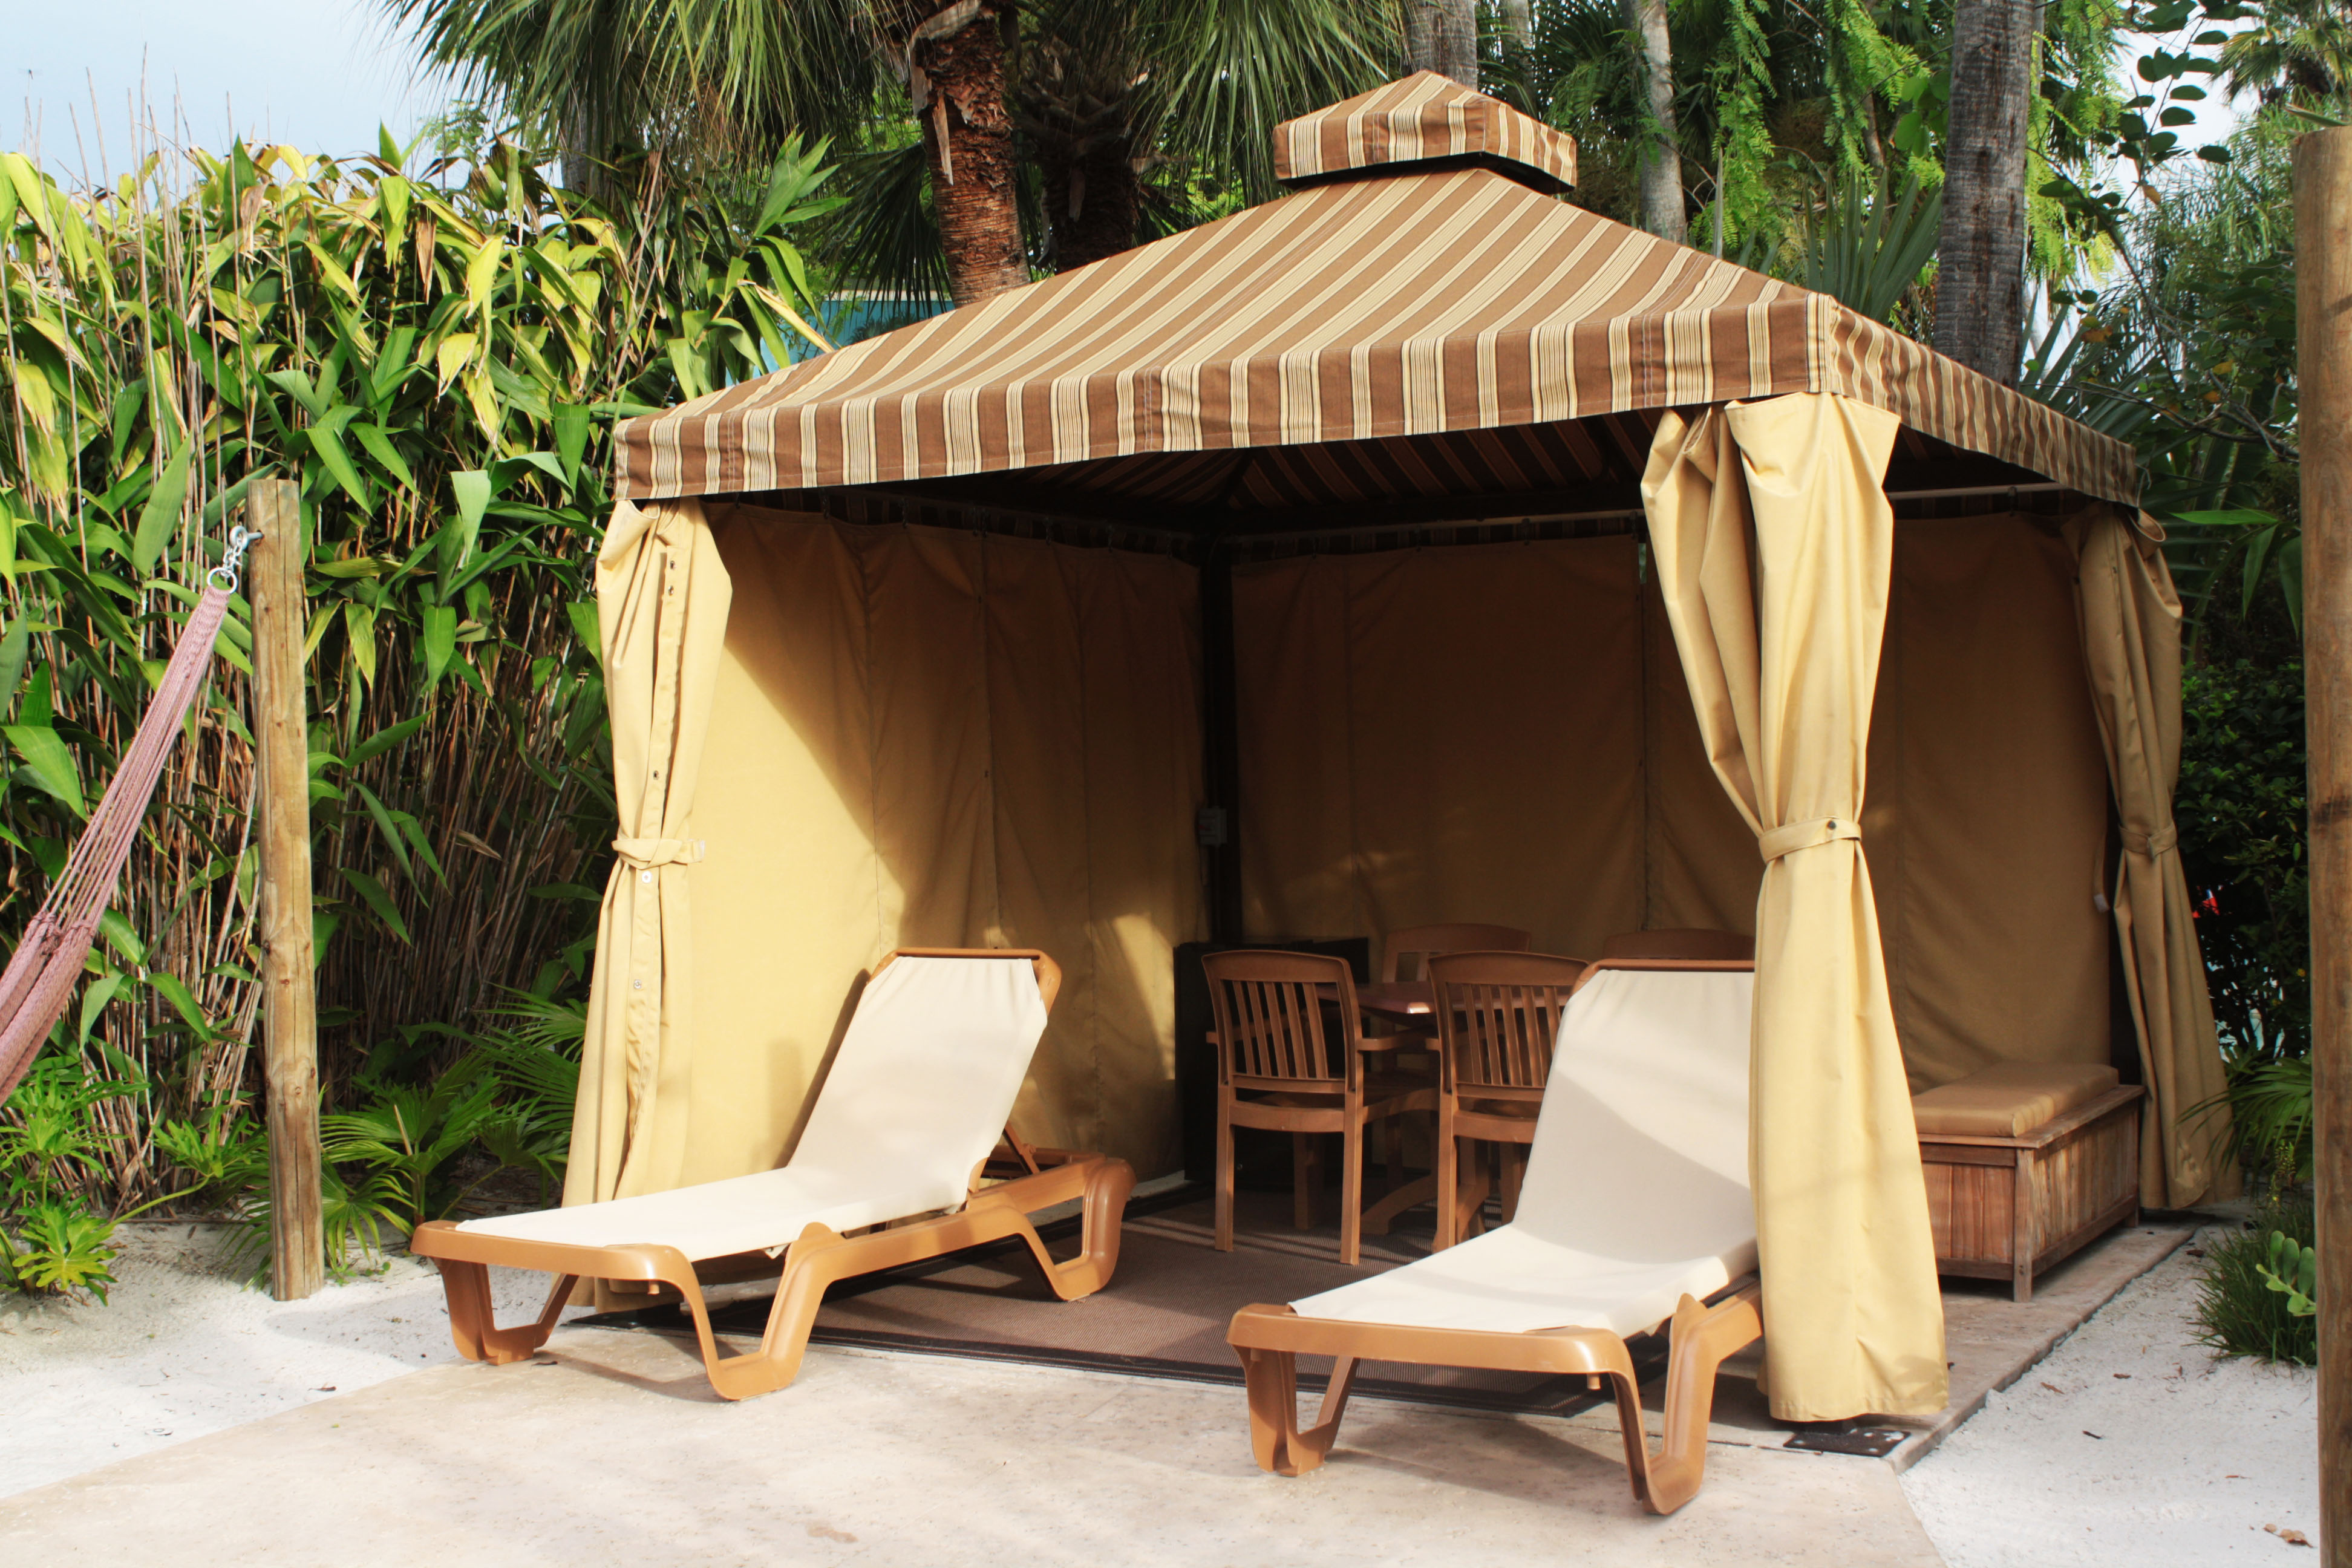 Subrite Outdoor Furniture – Enhancing Your Outdoor Experience